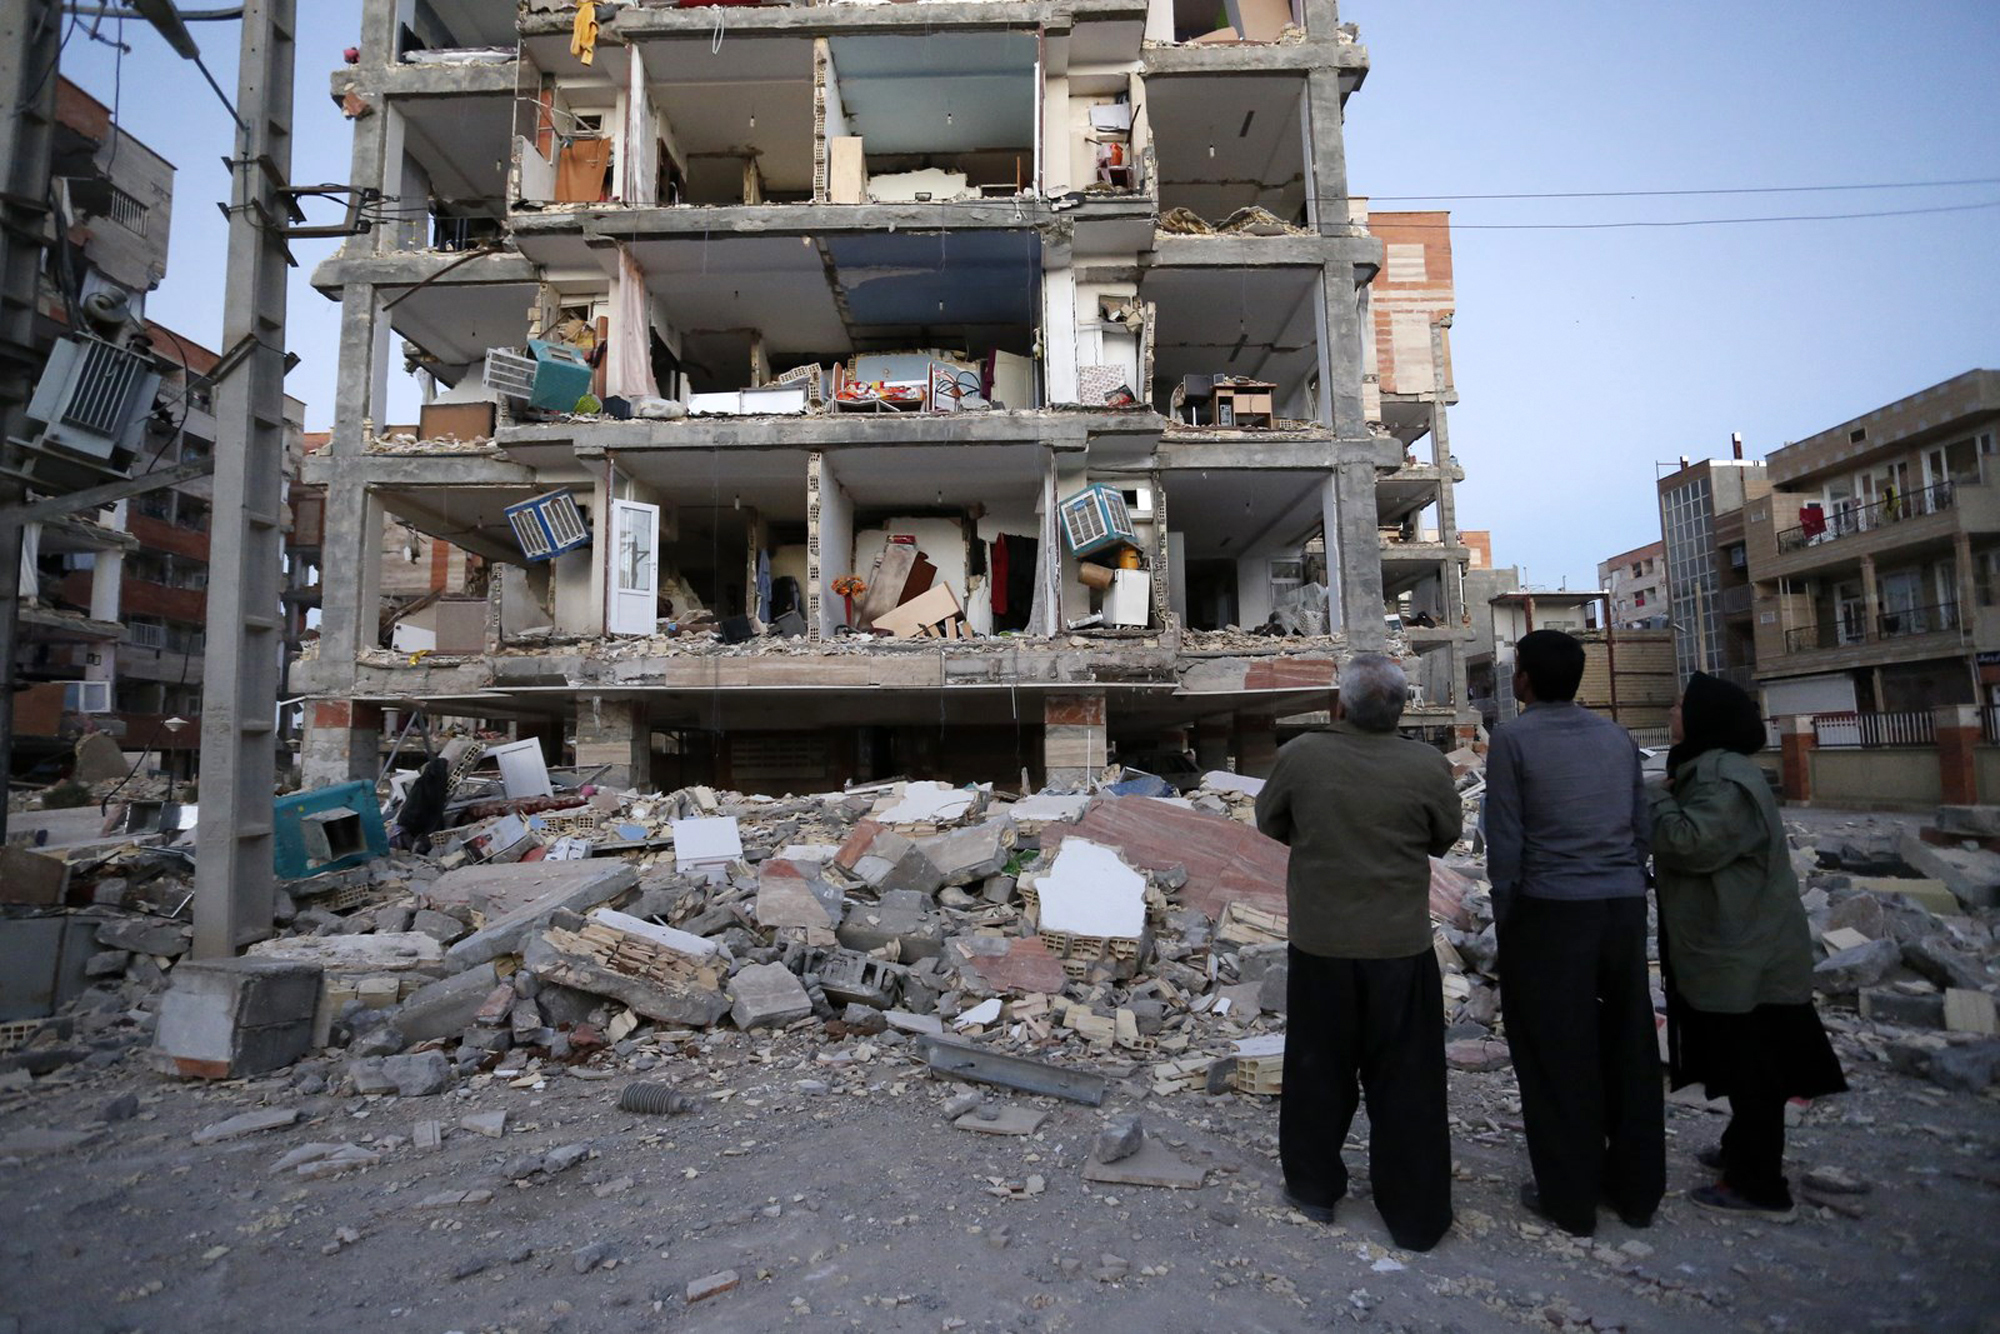 <div class='meta'><div class='origin-logo' data-origin='none'></div><span class='caption-text' data-credit='Pouria Pakizeh/ISNA via AP'>In this photo provided by the ISNA, people look at destroyed buildings after an earthquake at the city of Sarpol-e-Zahab in western Iran, Monday, Nov. 13, 2017.</span></div>